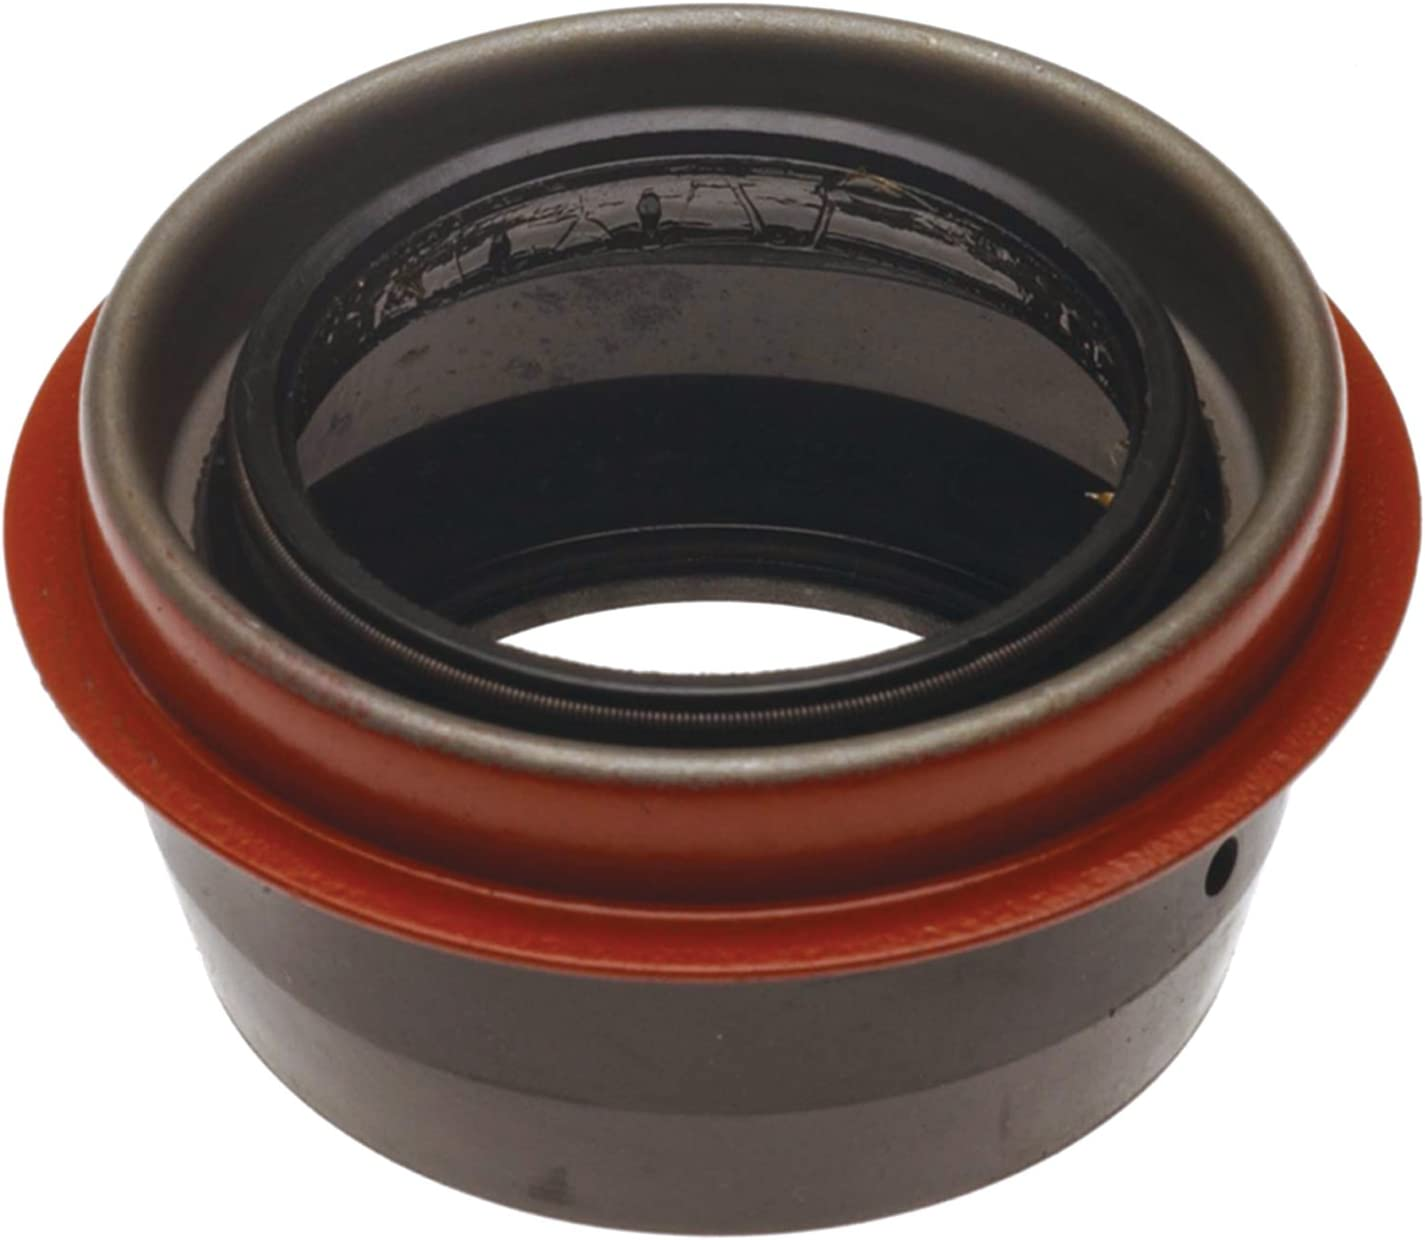 GM Genuine Parts 8677463 Quantity limited Automatic Shaf Rear Transmission Max 49% OFF Output